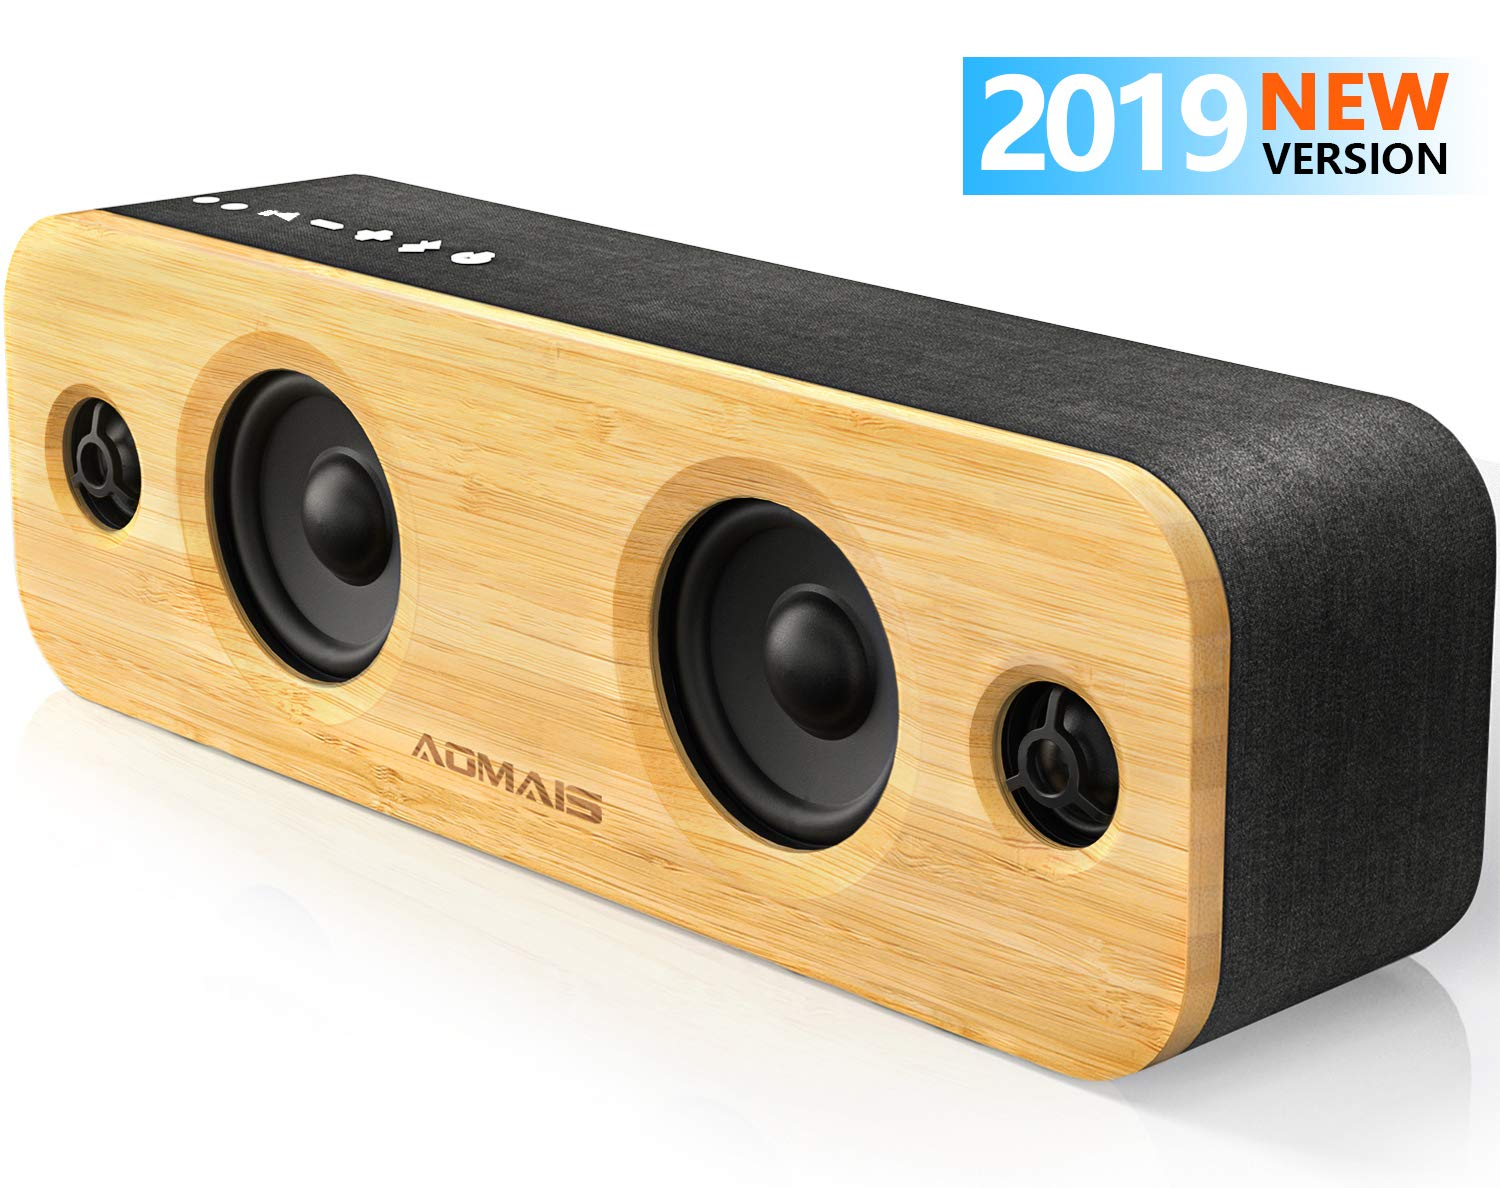 AOMAIS Life Bluetooth Speakers, 30W Loud Home Party Wireless Speaker, 2 Woofer & 2 Tweeters for Super Bass Stereo Sound, 100 Ft Bluetooth V5.0 and 12-Hour Playtime Subwoofer [ Imitation Bamboo Panel ] by AOMAIS